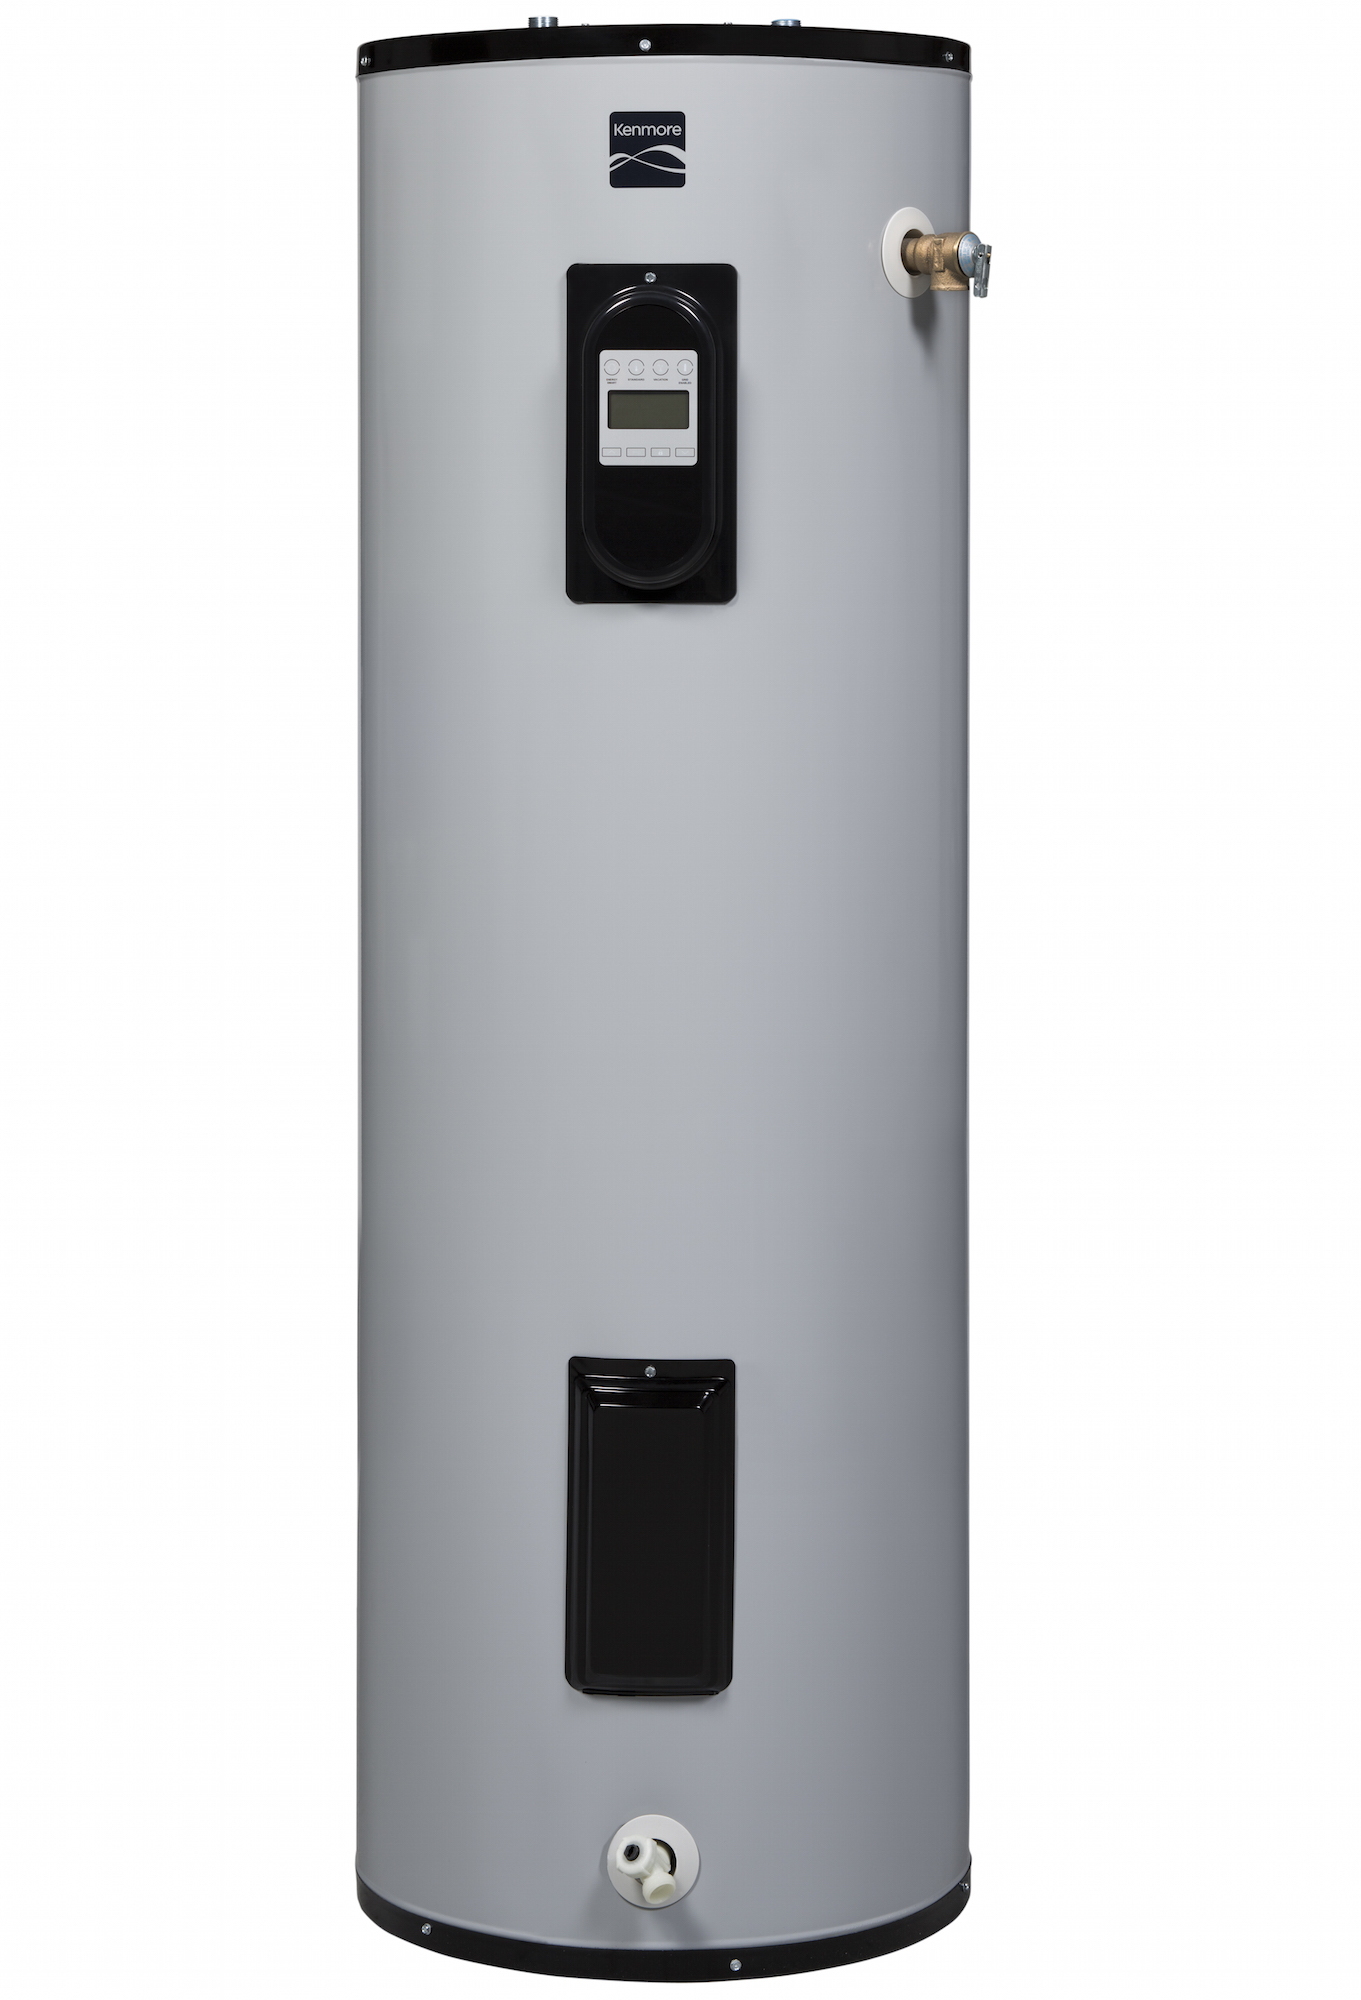 Kenmore 58240 40 gal. 12-Year Tall Electric Water Heater